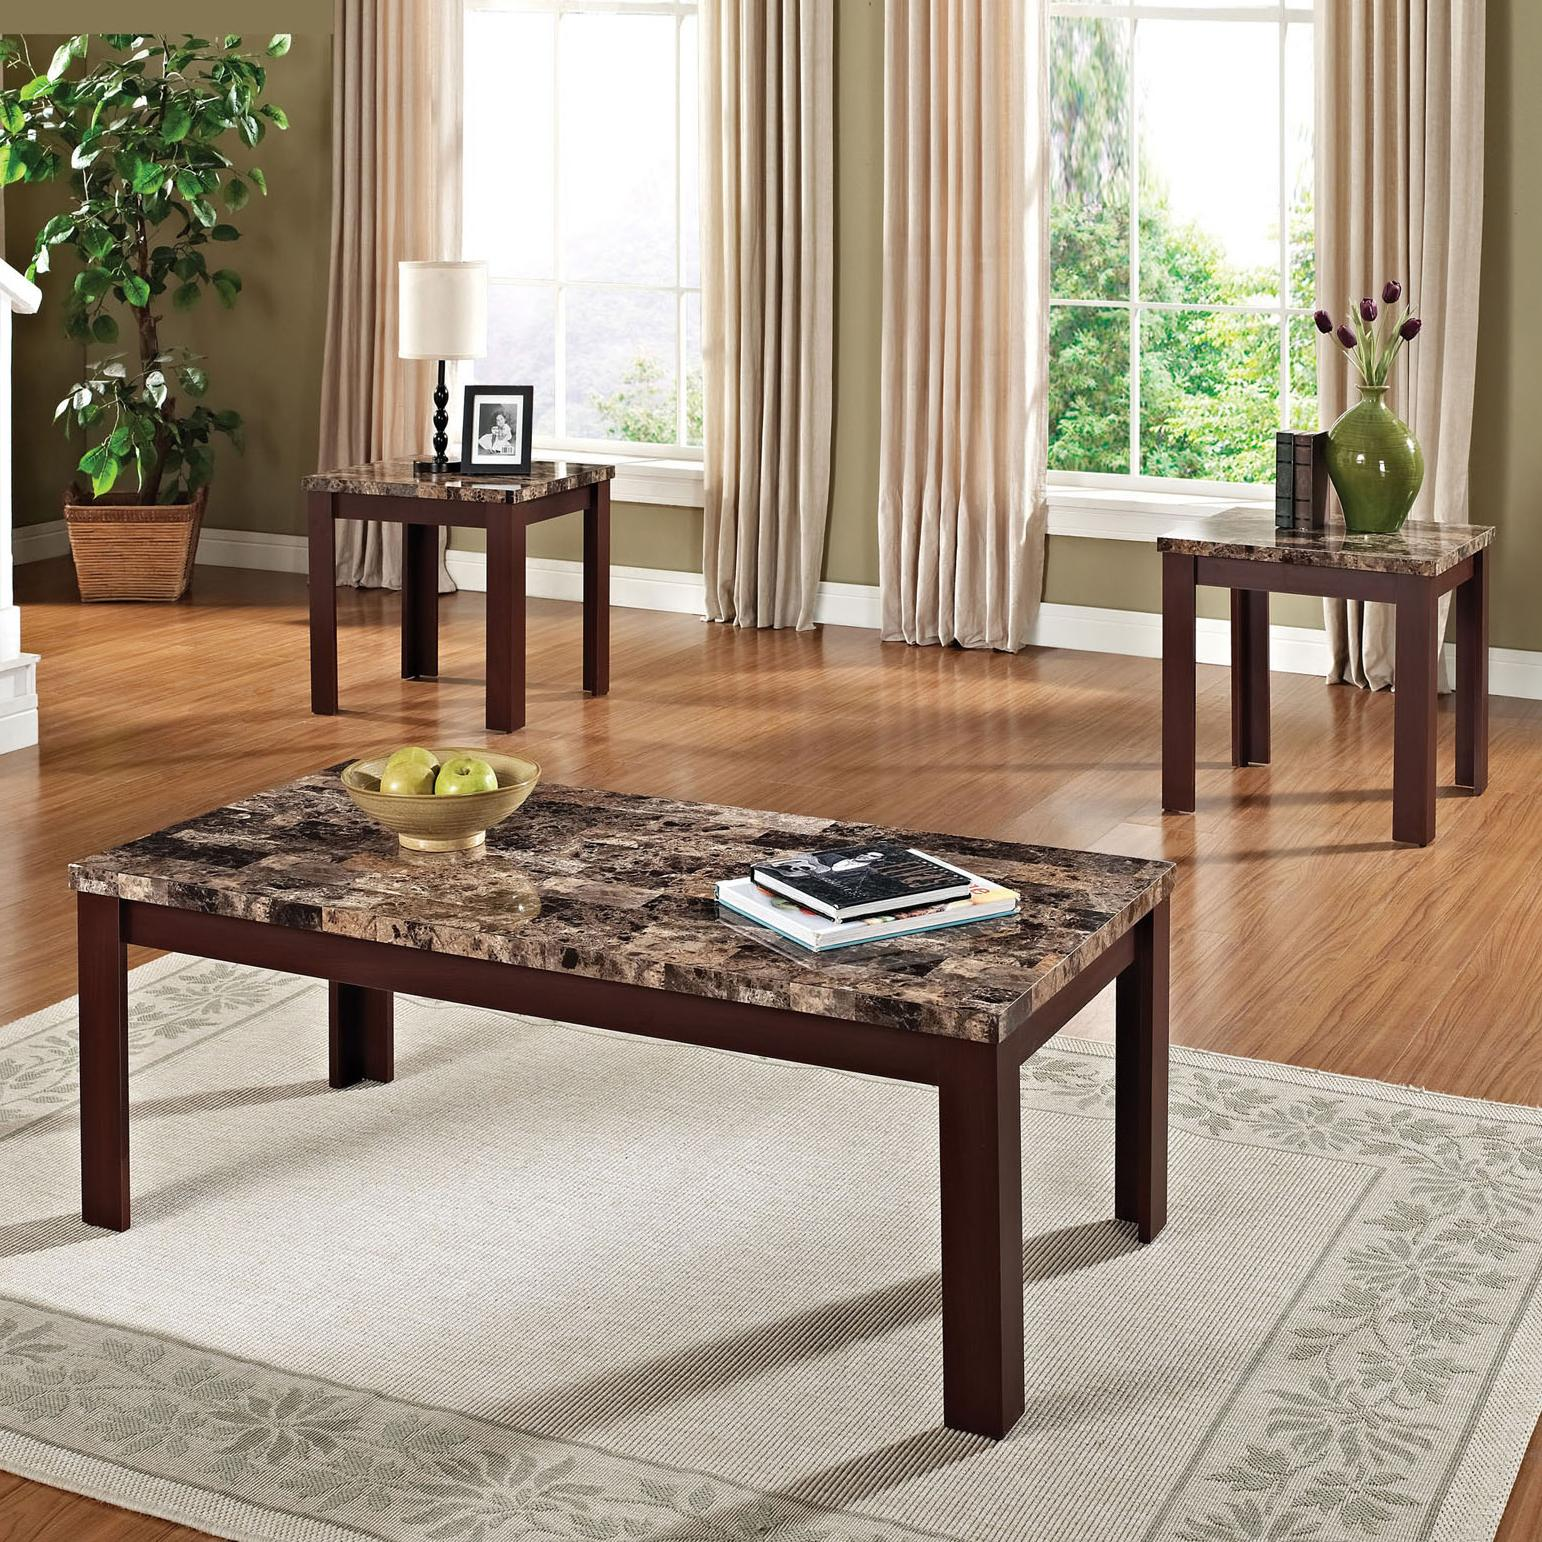 3-Piece Coffee/End Table Set